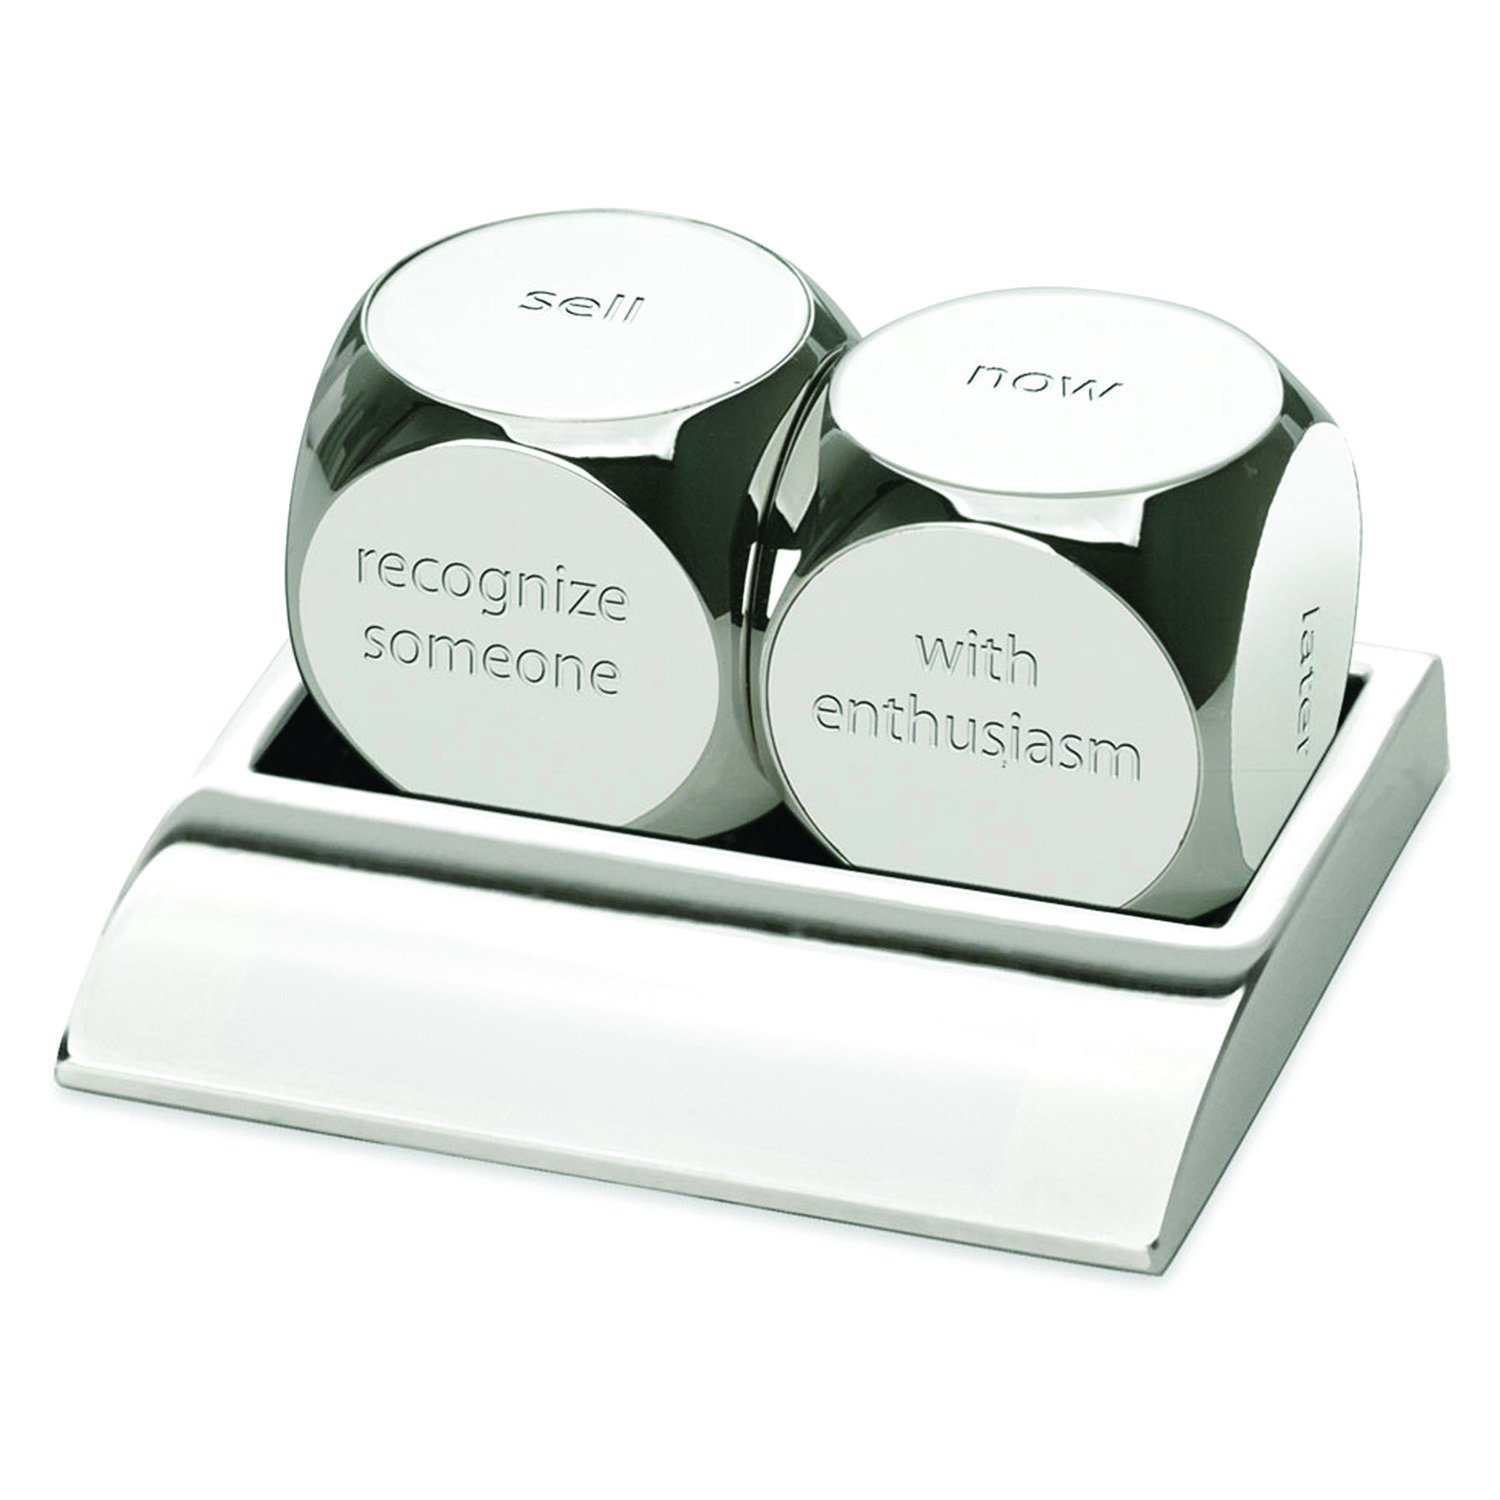 3-in-1 Executive Decision Dice Set. Die #1 ''Buy, Sell, Take A Break, Set A Goal, Make A Change, Recognize Someone''. Die #2 ''With Confidence, With Enthusiasm, Later, Now, Tomorrow, Maybe''. Silver